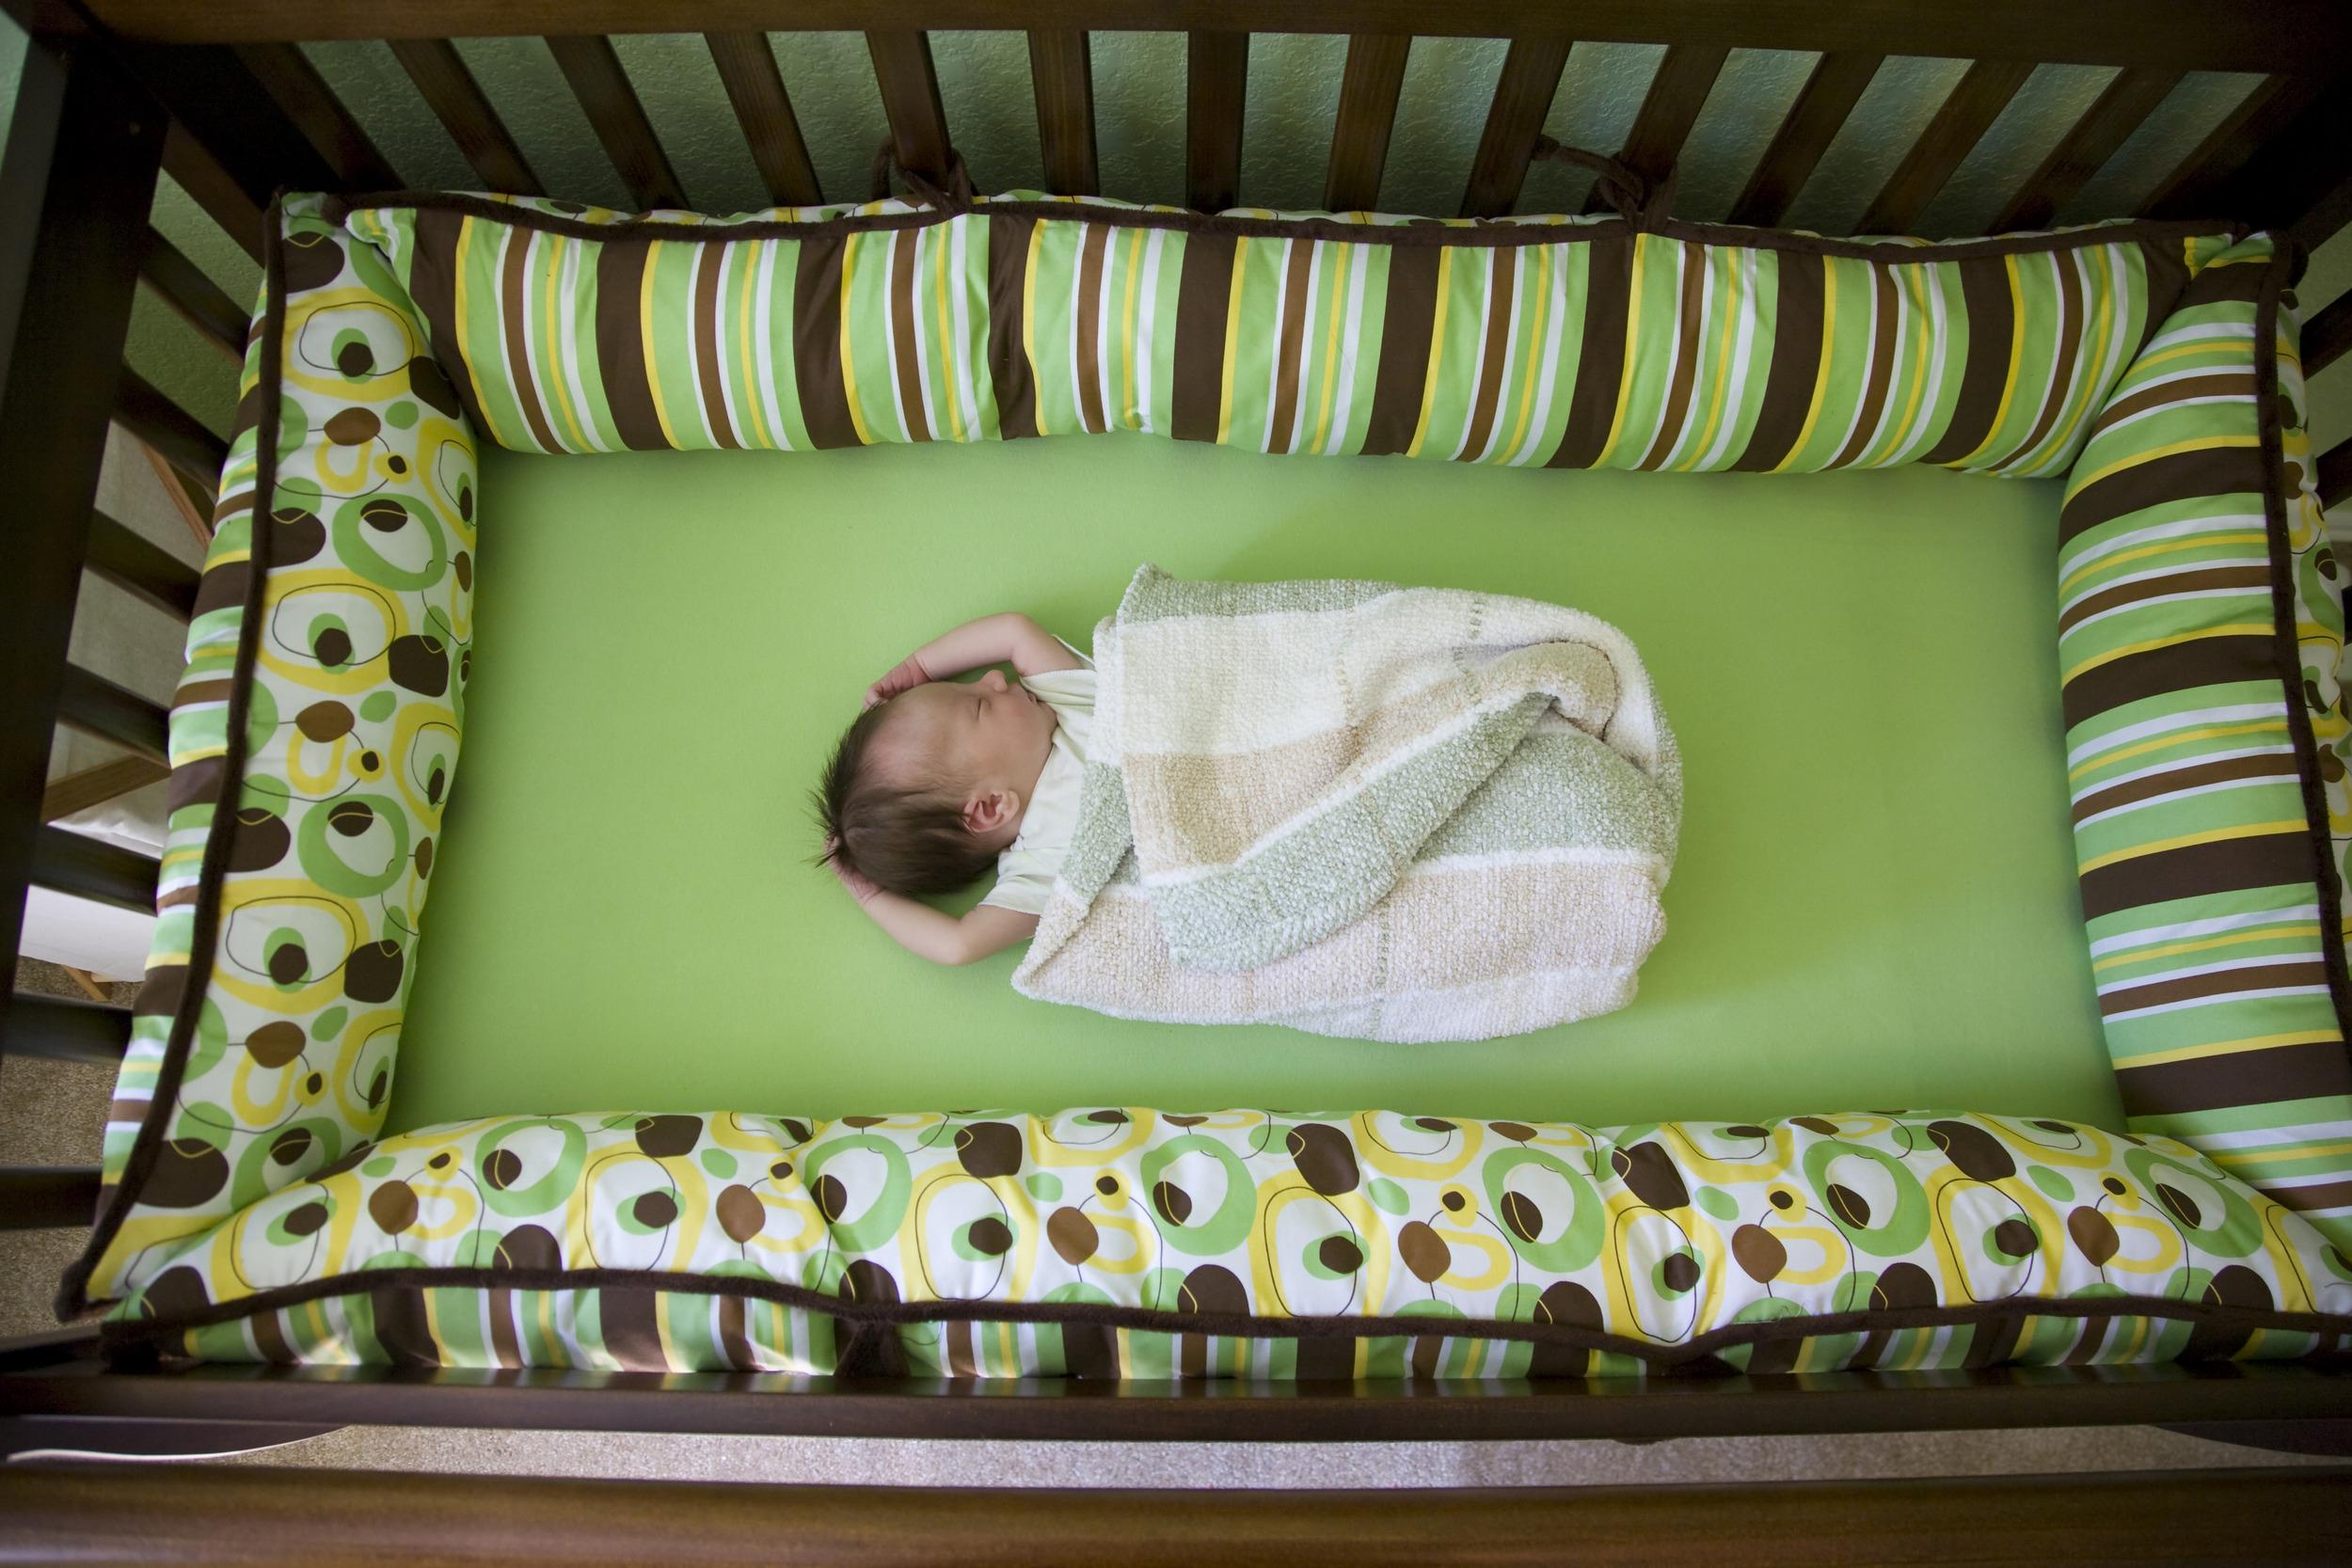 White Noise Machines Could Hurt Babies Hearing Study